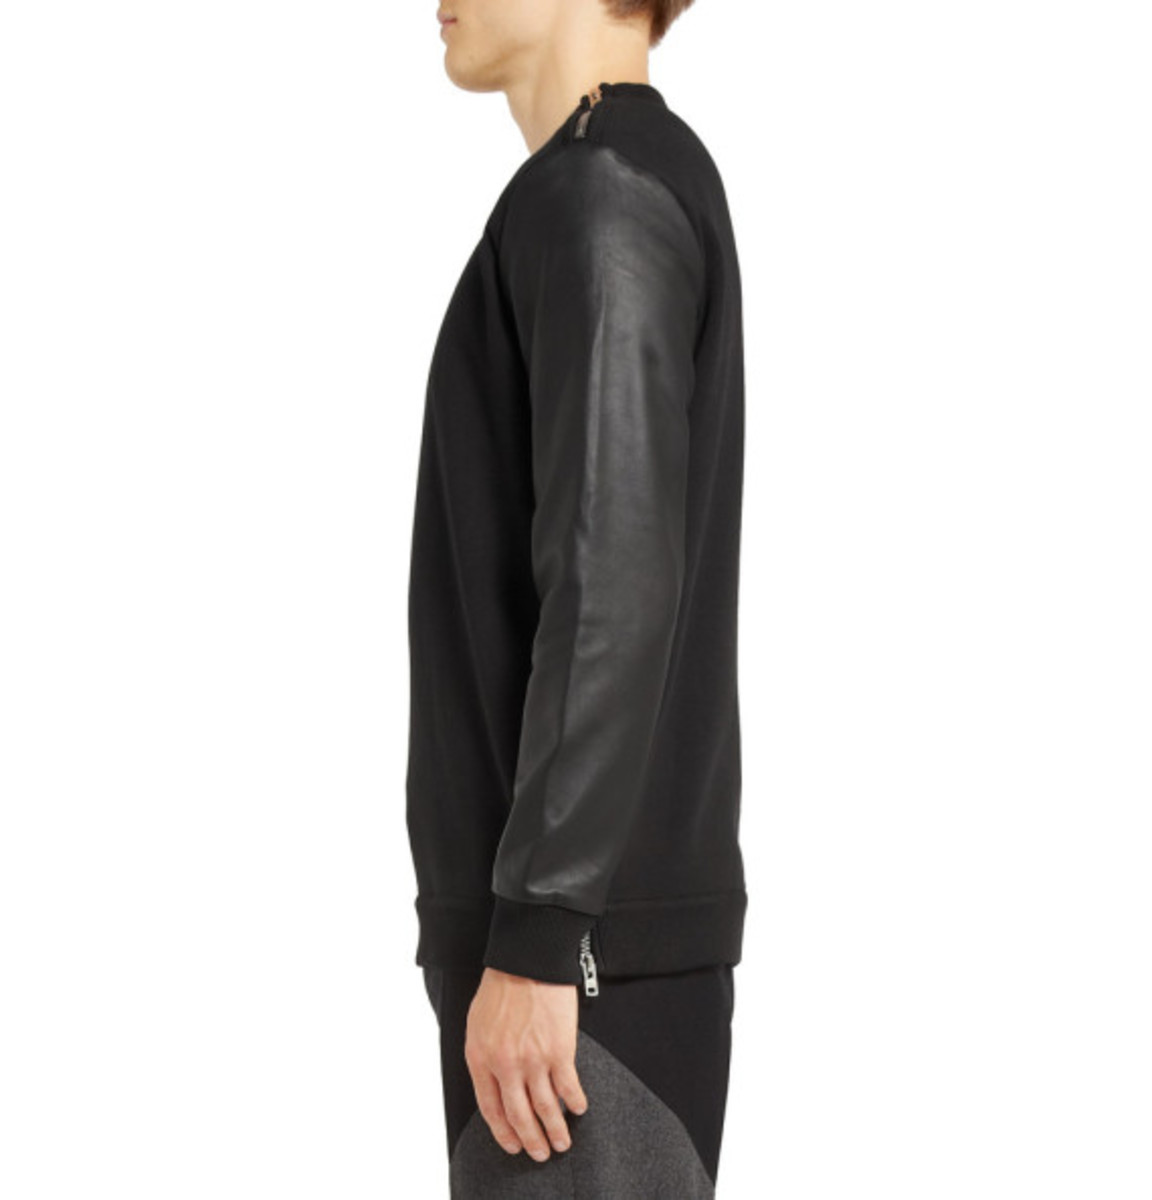 givenchy-leather-sleeved-cotton-sweater-04